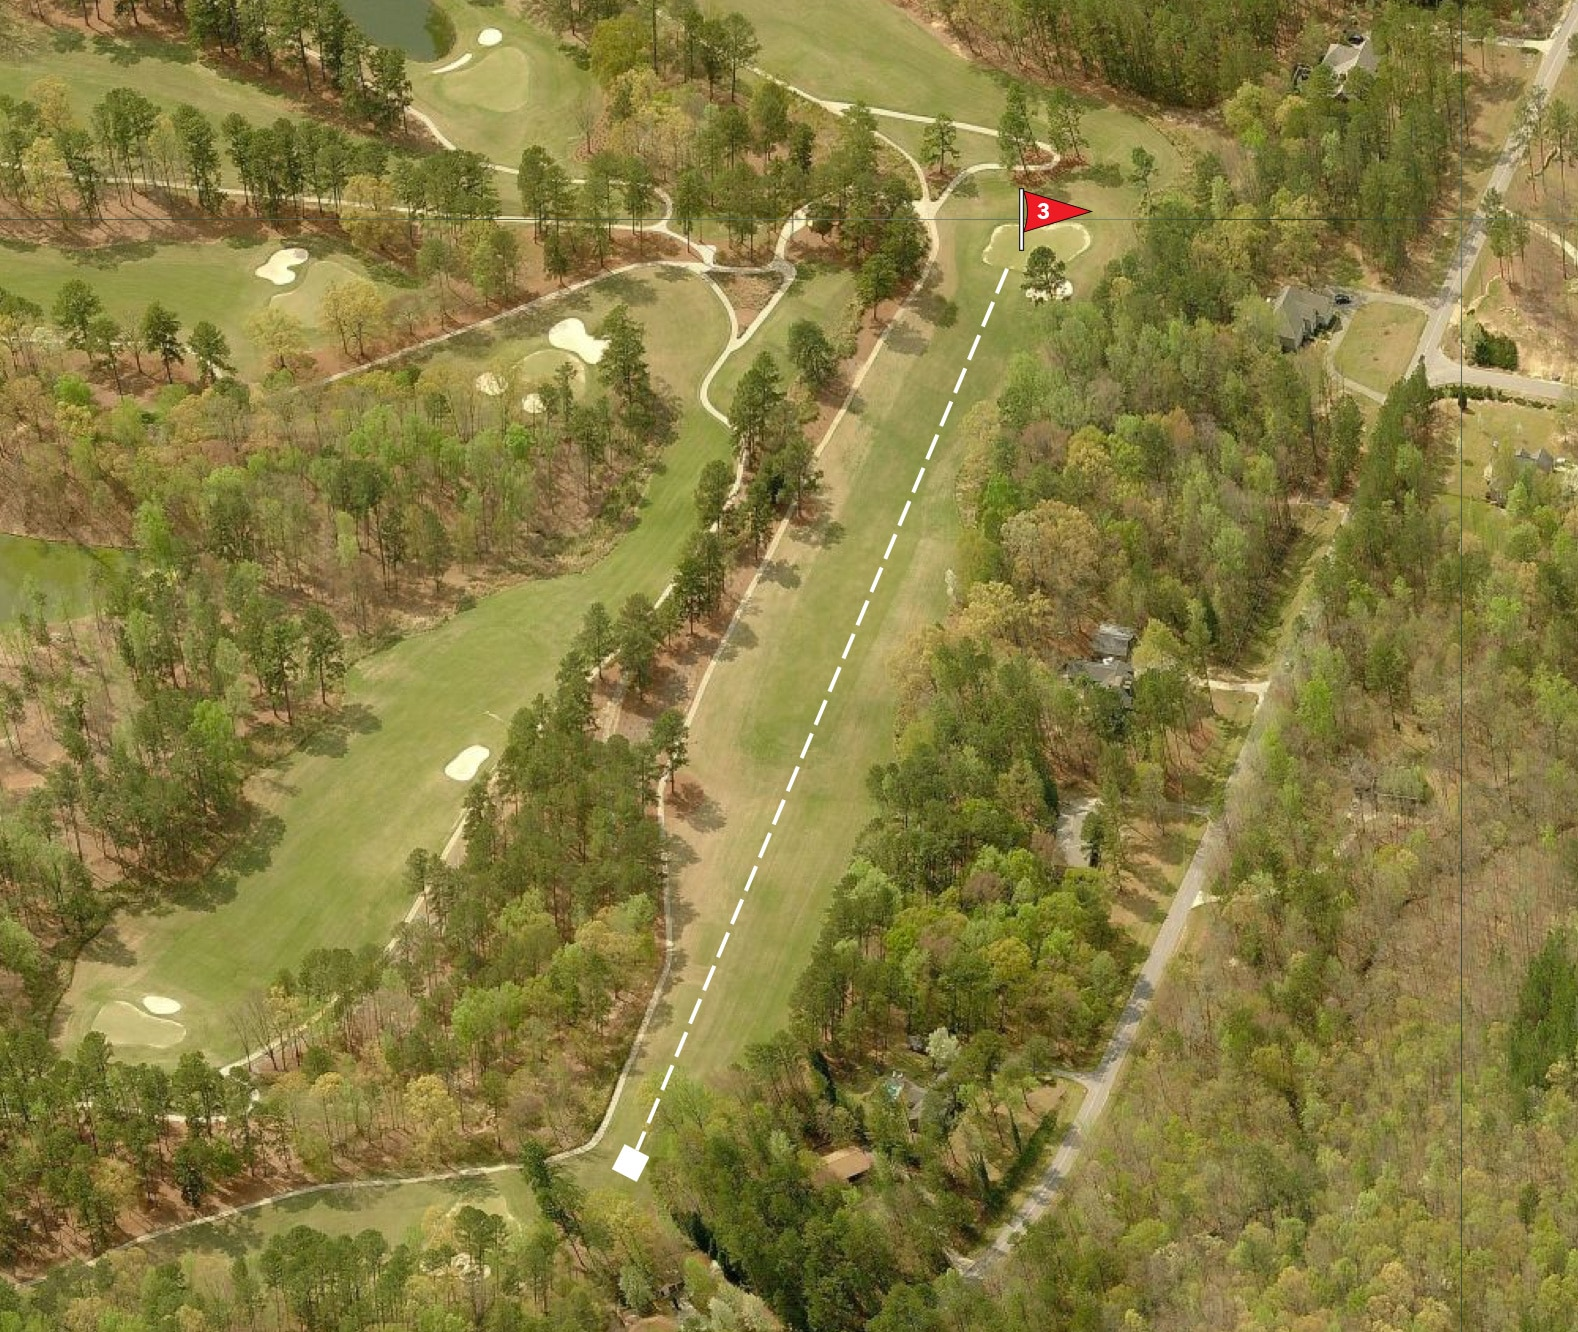 Bird's eye view of Hole No. 3